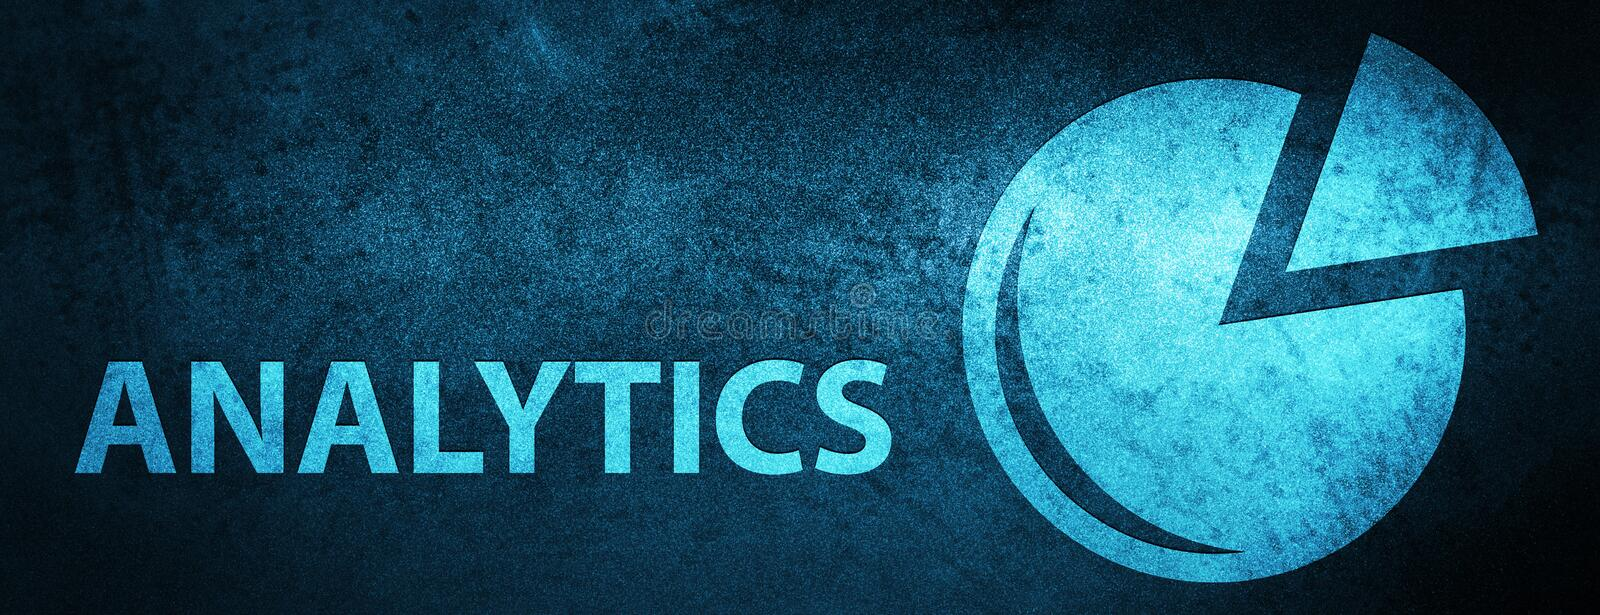 Analytics (graph icon) special blue banner background. Analytics (graph icon) isolated on special blue banner background abstract illustration vector illustration